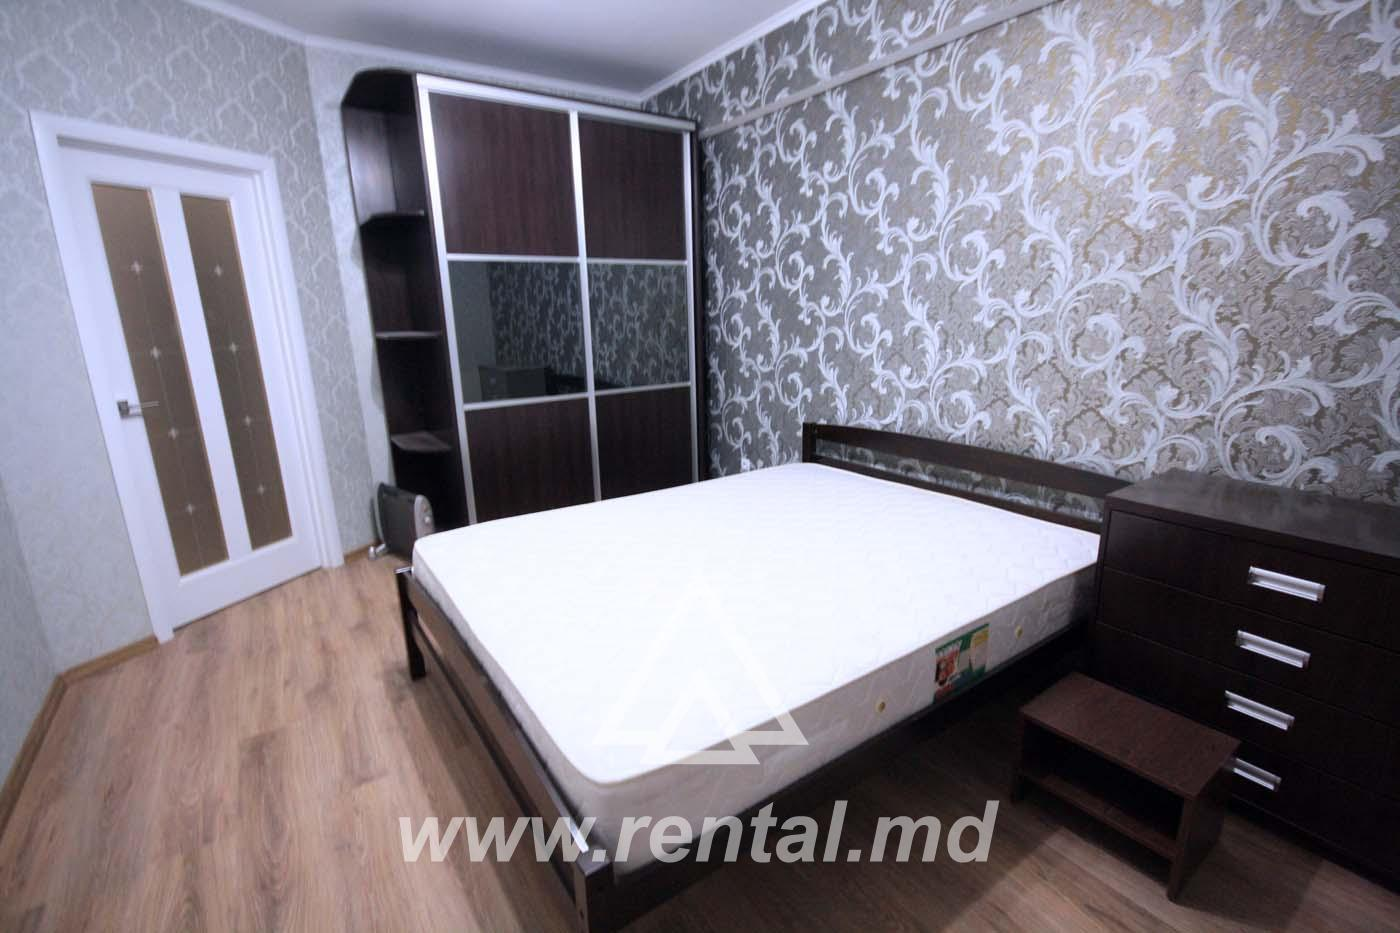 Apartment for rent near the city center